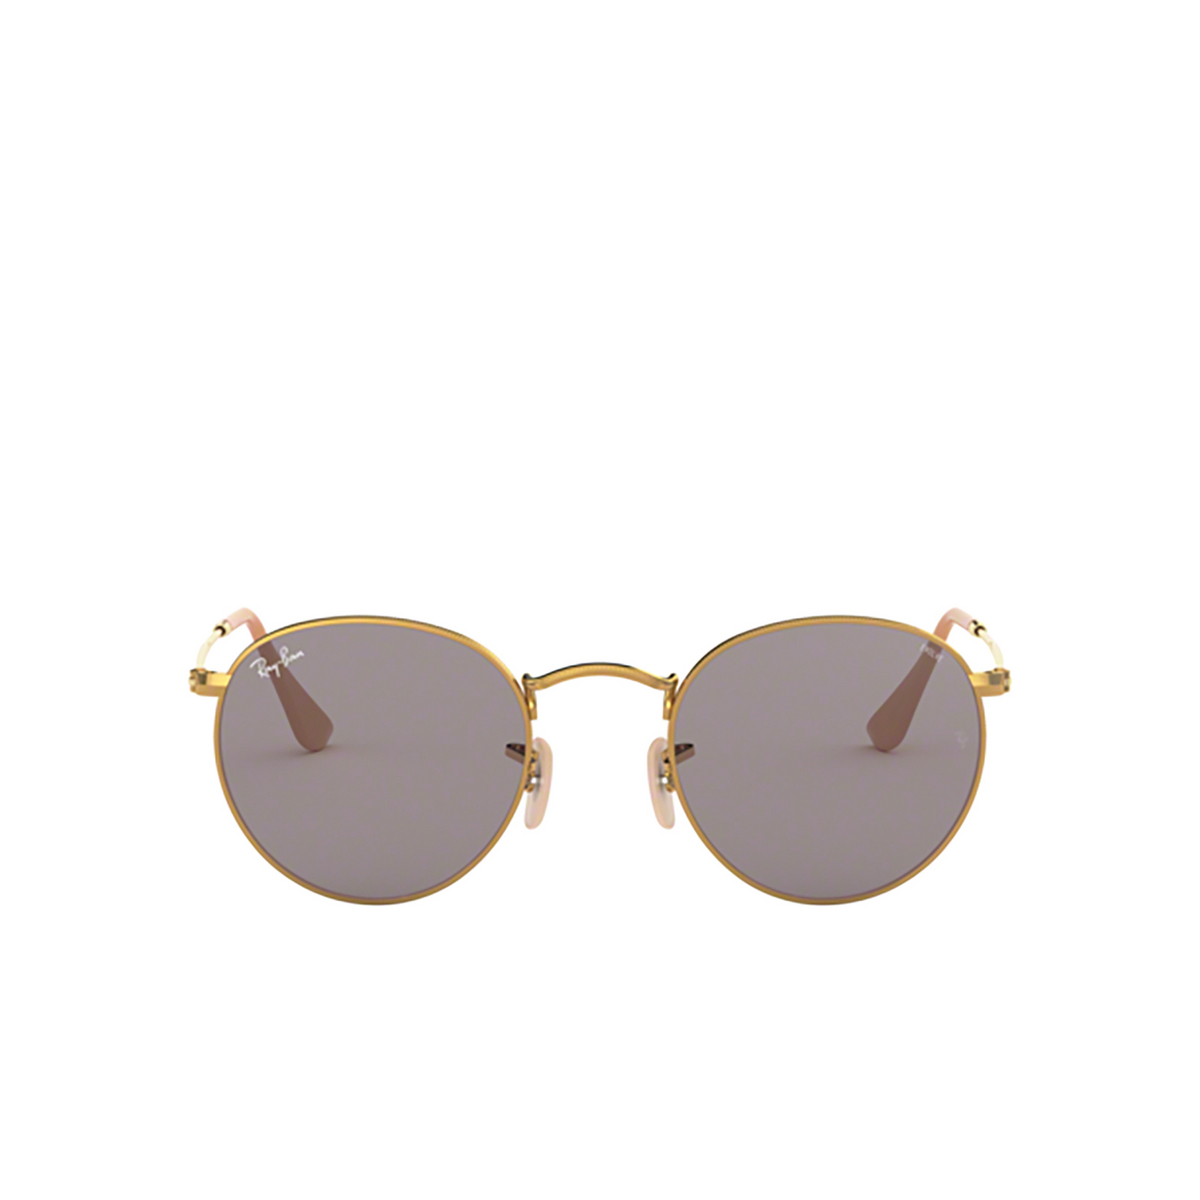 Ray-Ban® Round Sunglasses: Round Metal RB3447 color Arista 9064V8 - front view.